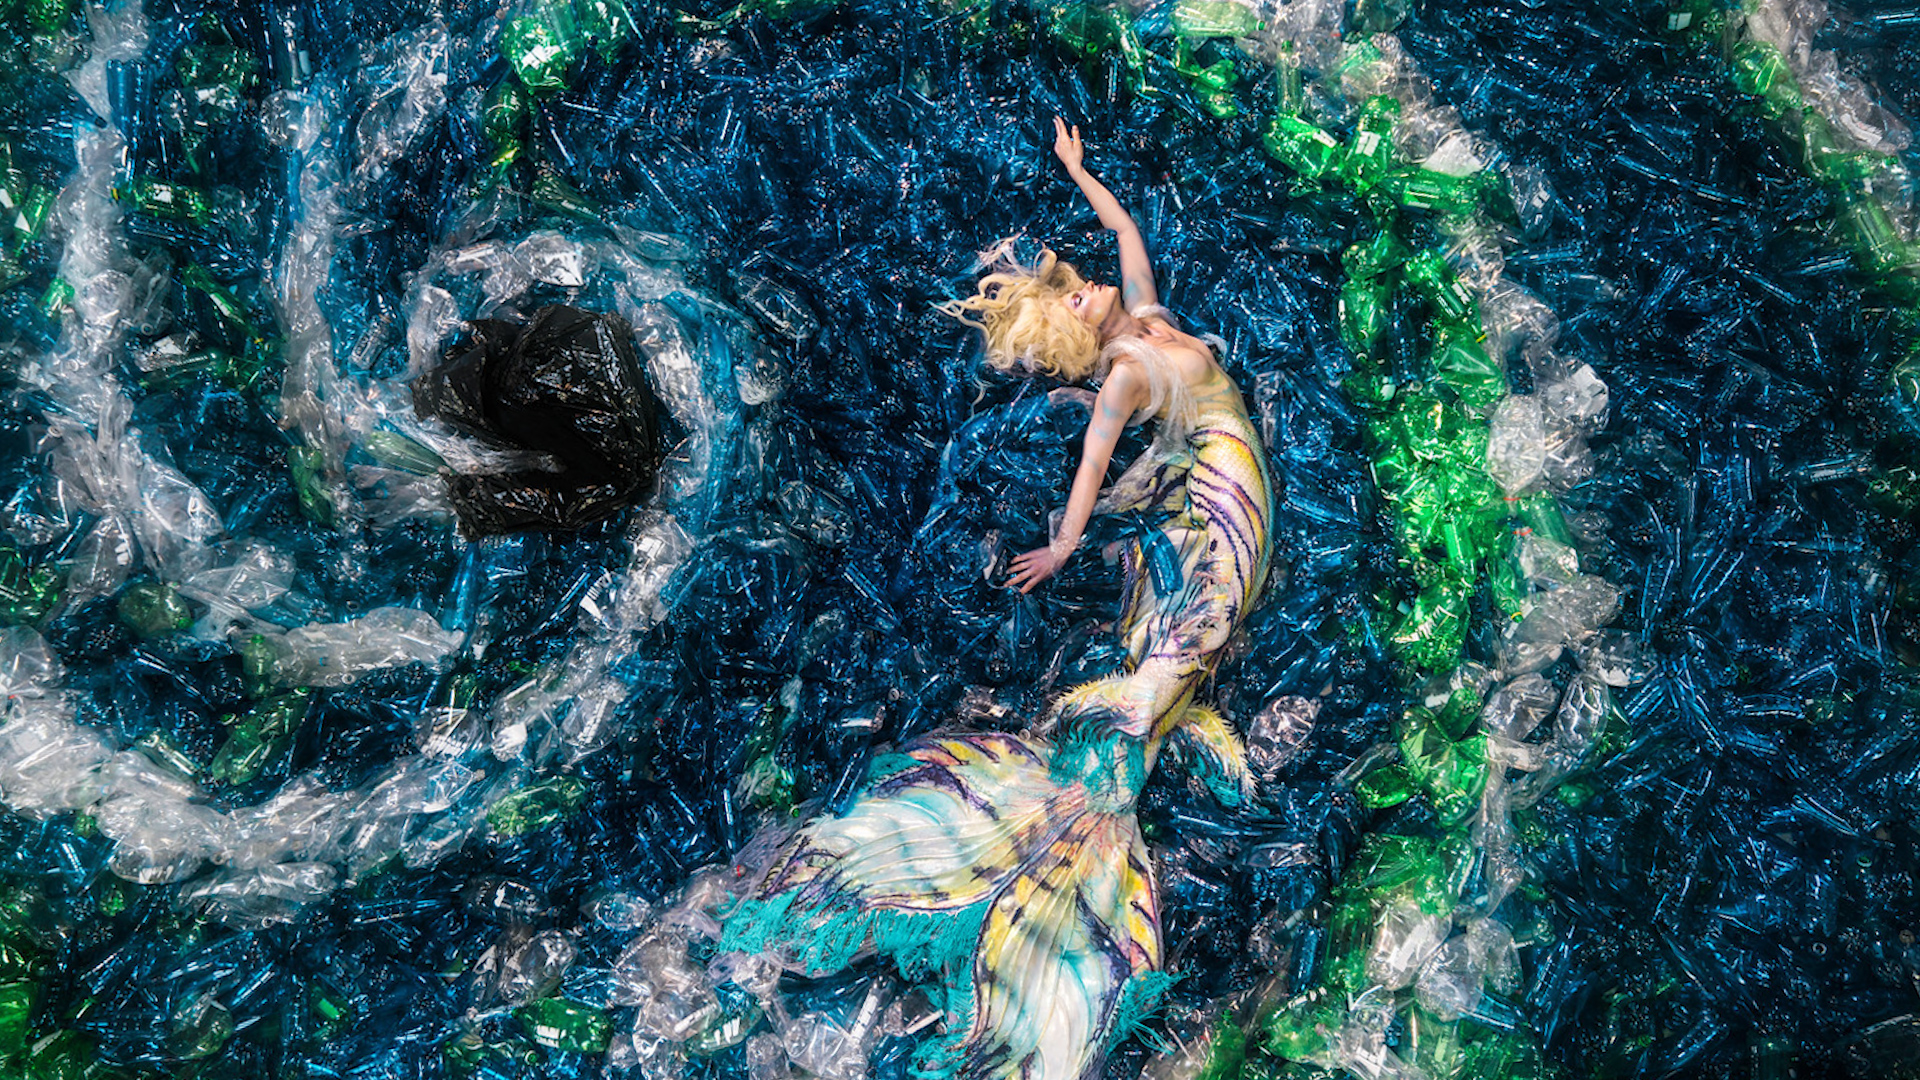 Canadian artist uses 10,000 plastic bottles for mermaid photo shoot to  raise awareness on waste